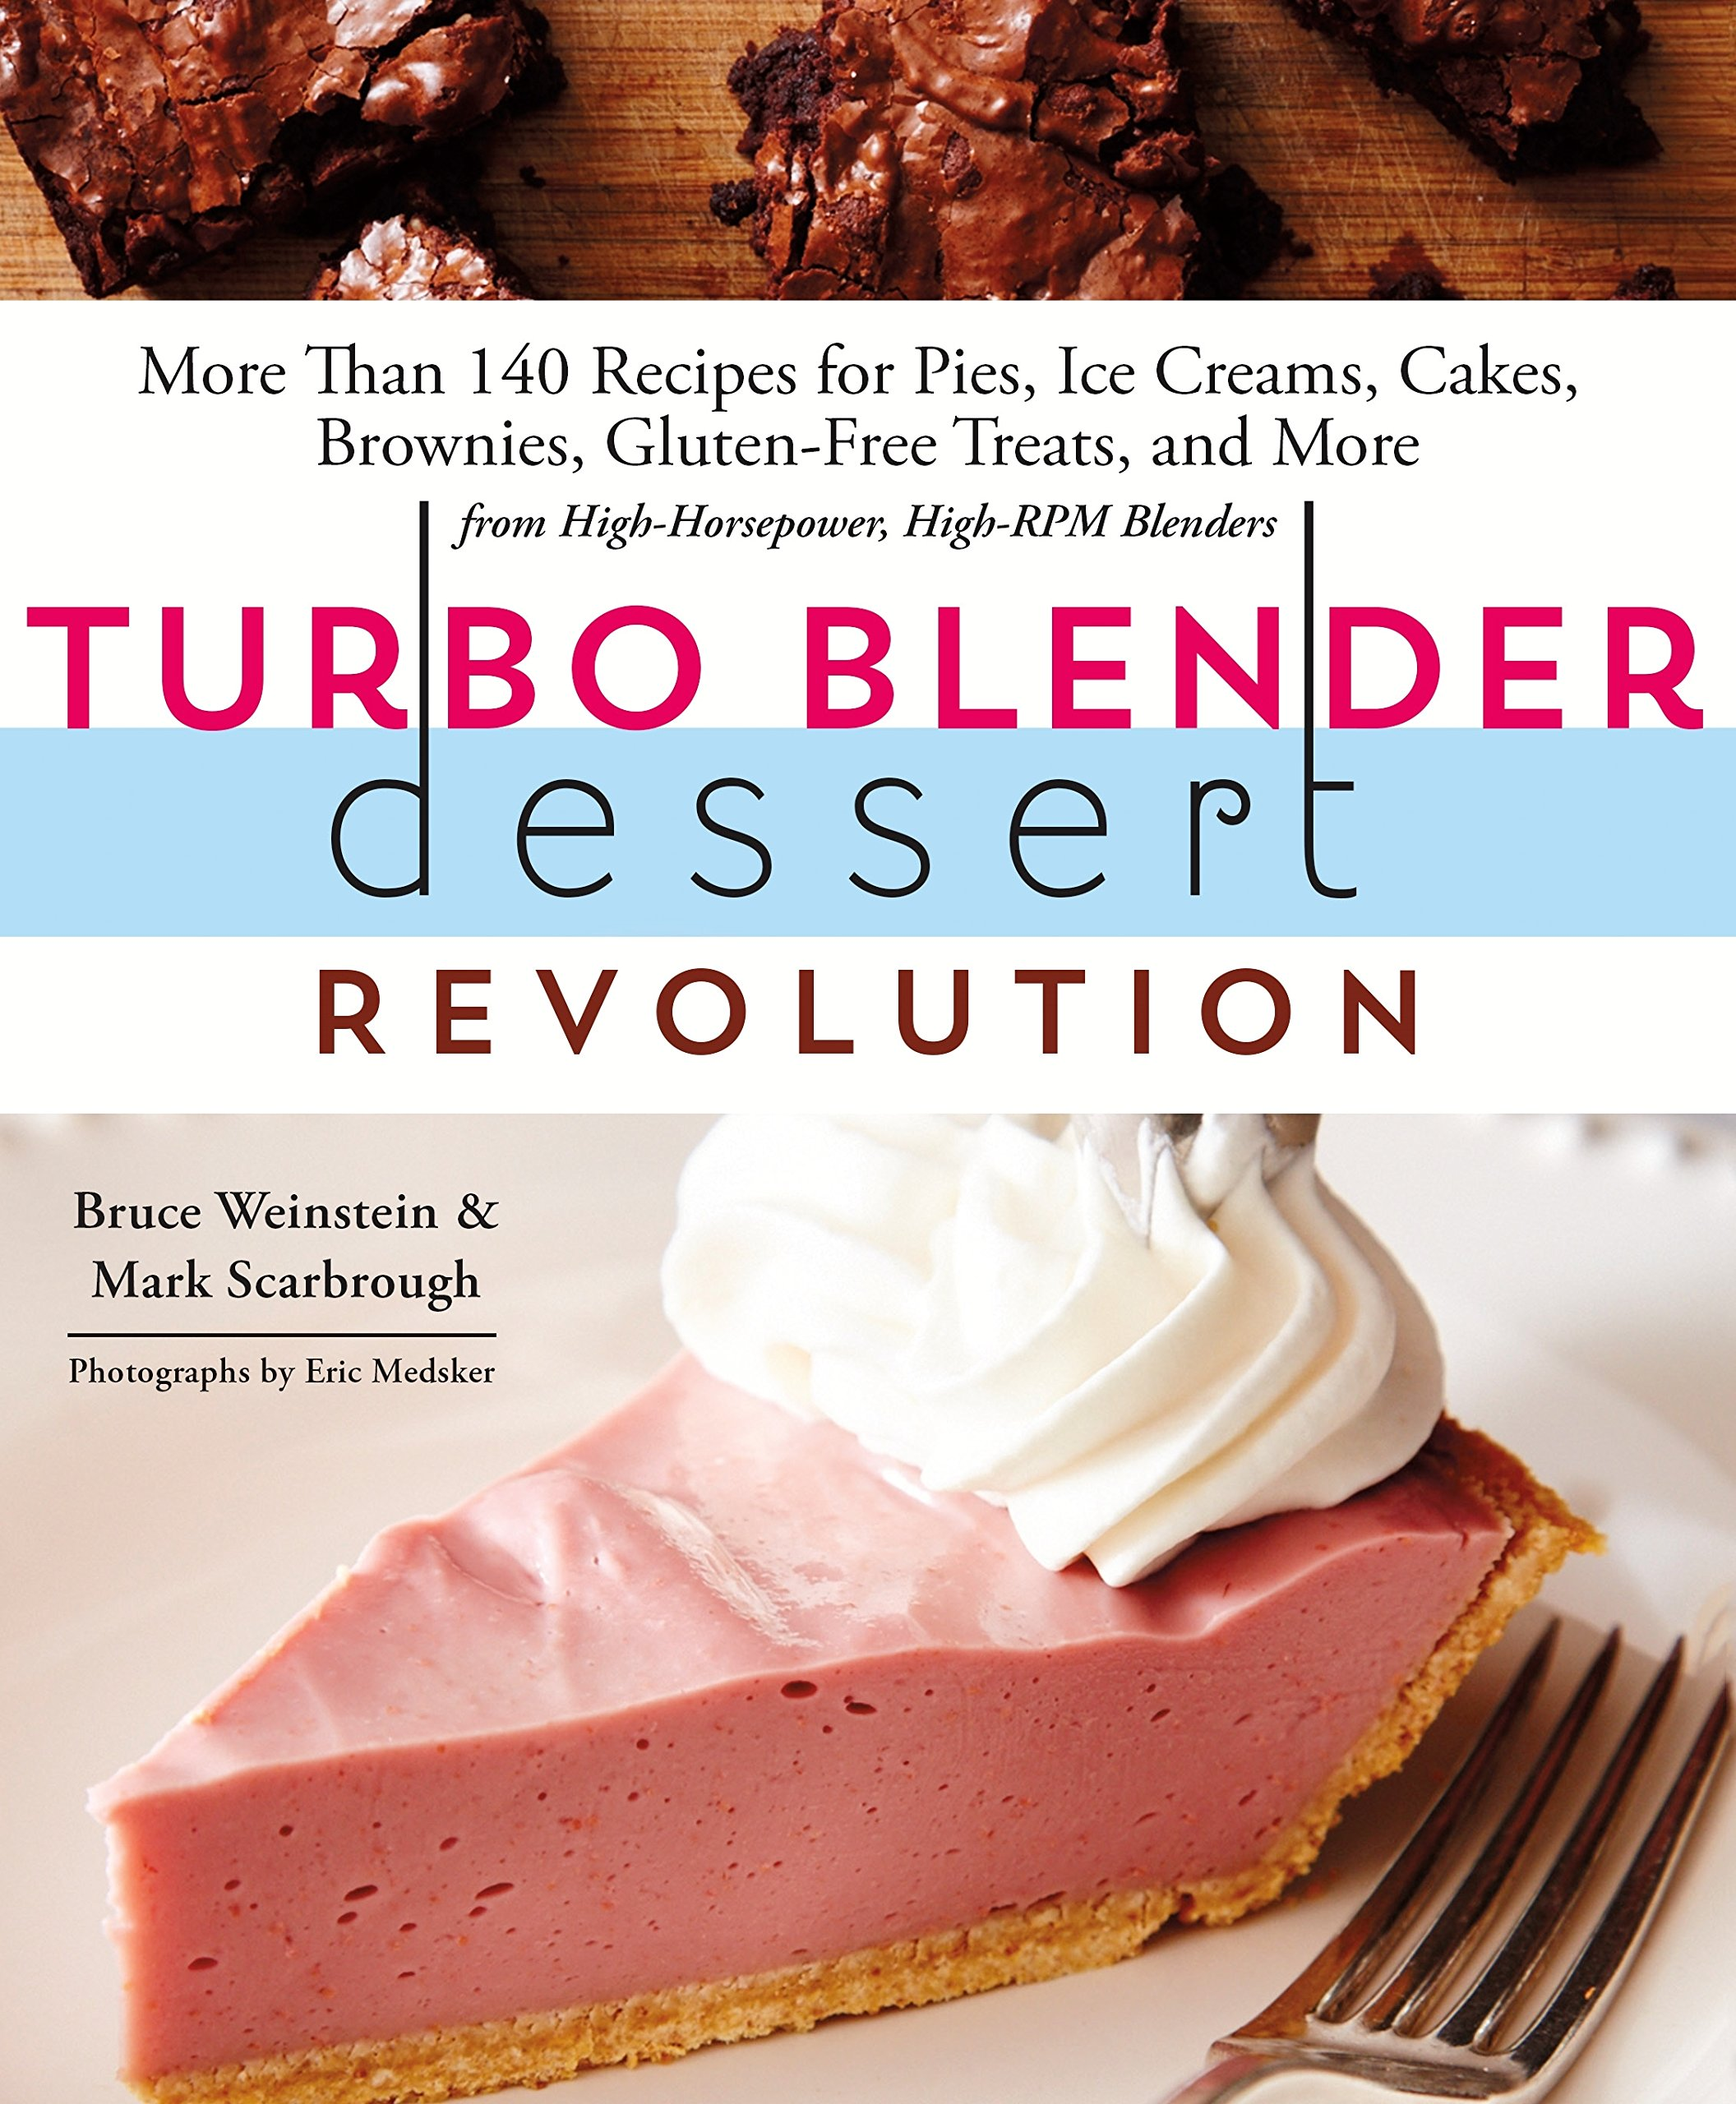 Turbo Blender Dessert Revolution: More Than 140 Recipes for Pies, Ice Creams, Cakes, Brownies, Gluten-Free Treats, and More from High-Horsepower, ...